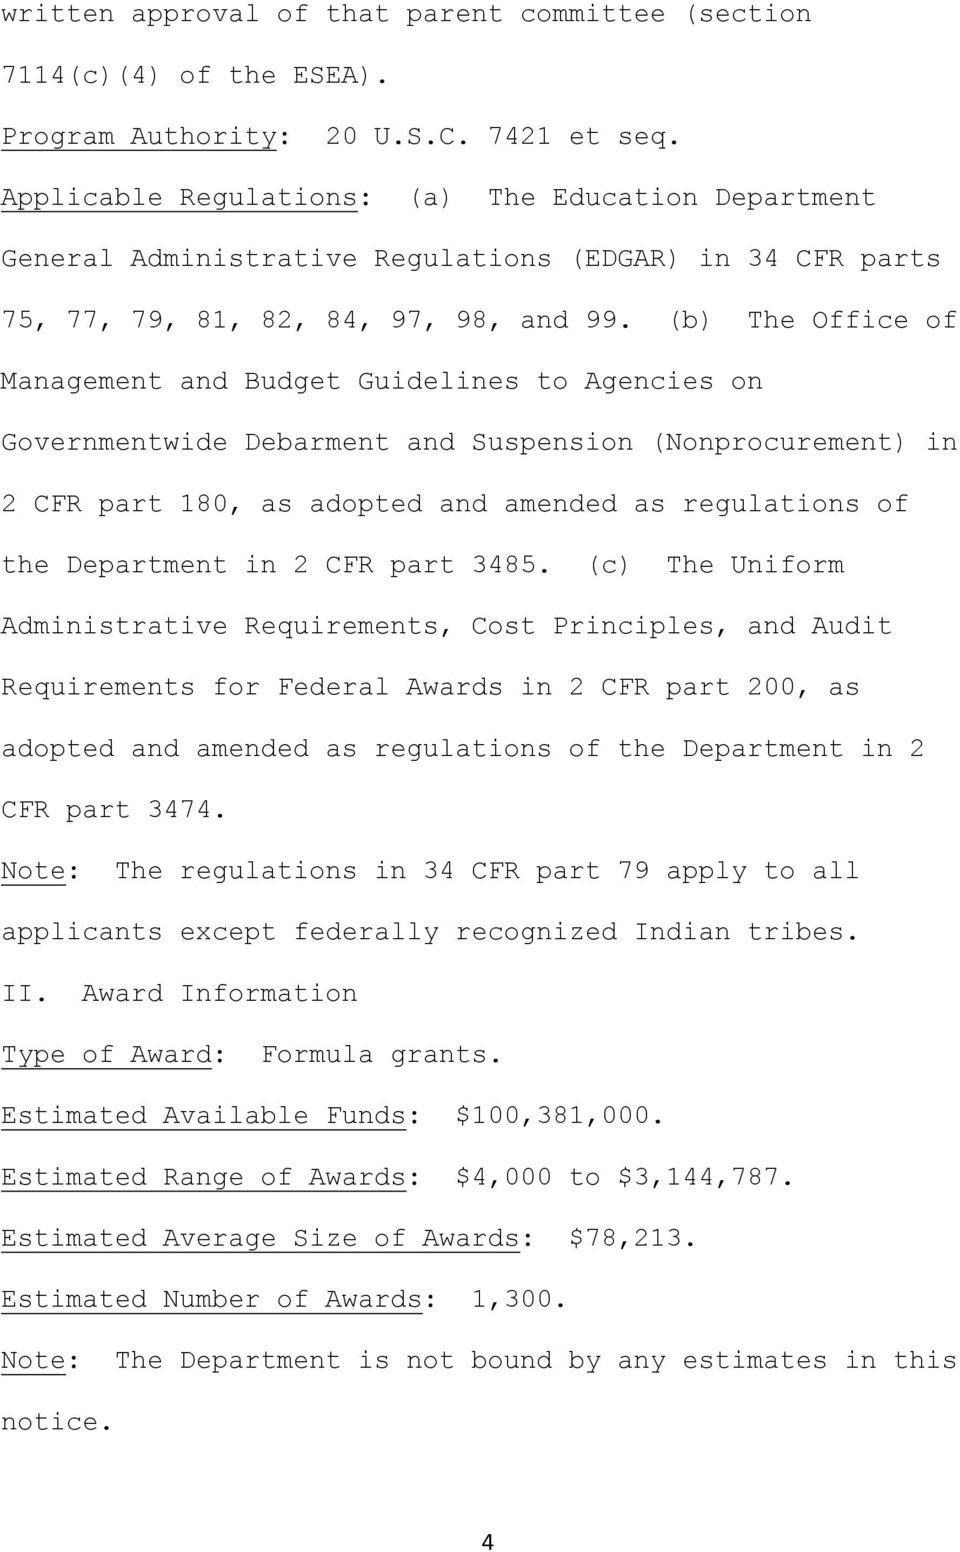 (b) The Office of Management and Budget Guidelines to Agencies on Governmentwide Debarment and Suspension (Nonprocurement) in 2 CFR part 180, as adopted and amended as regulations of the Department